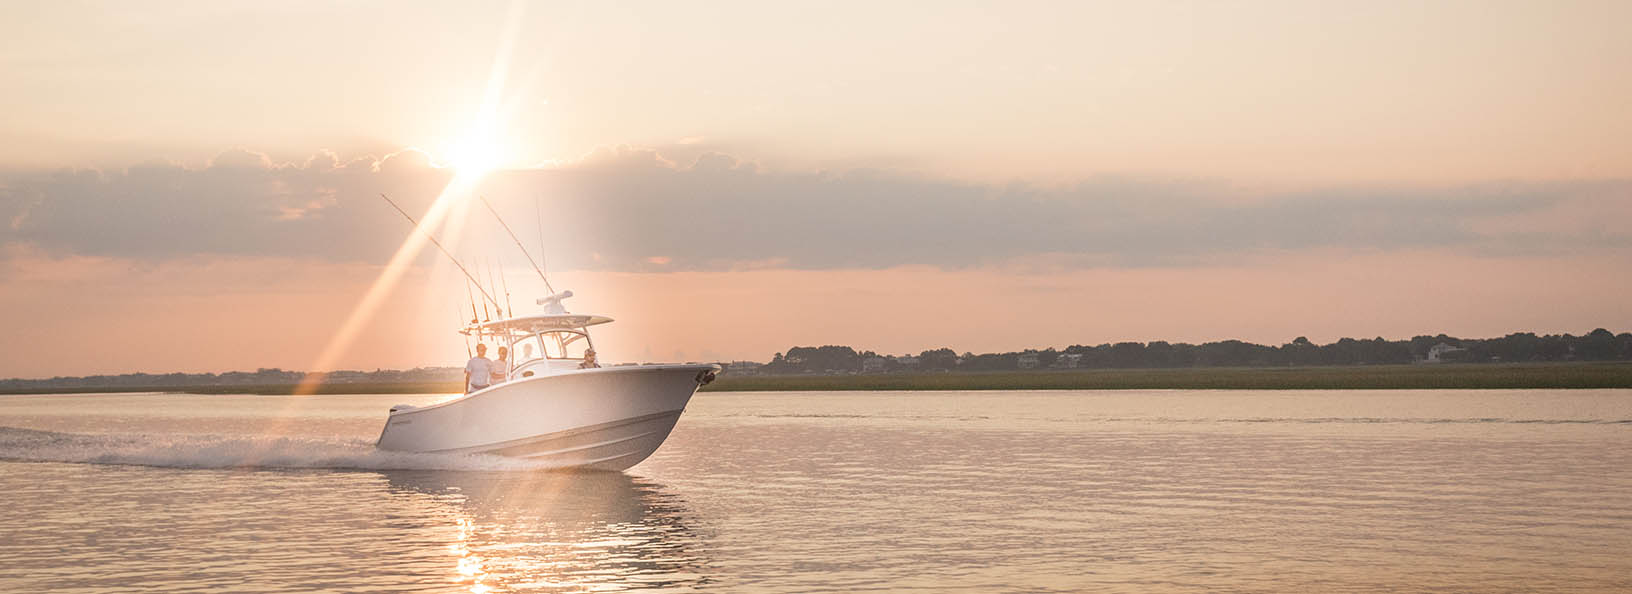 the Sportsman Open 312 Center Console on a morning cruise down the Intracoastal Waterway.